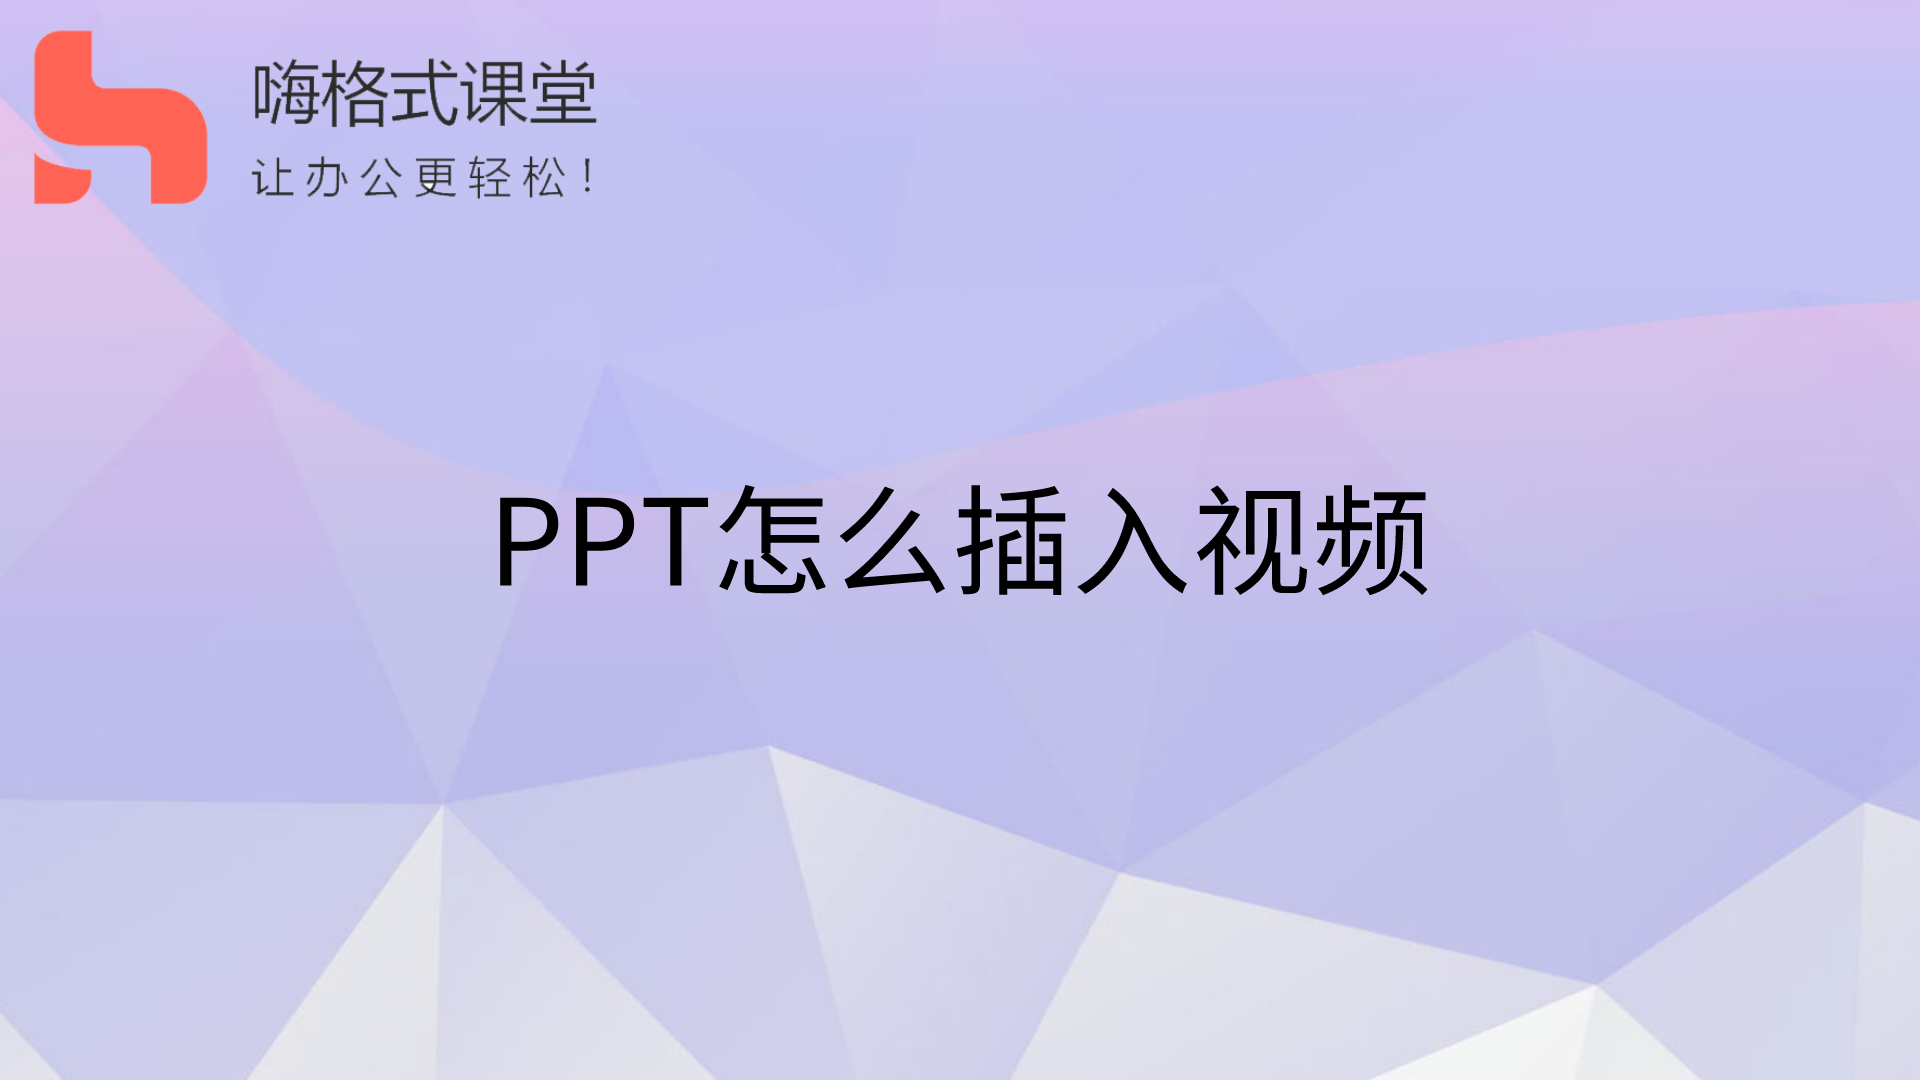 PPT怎么插入视频